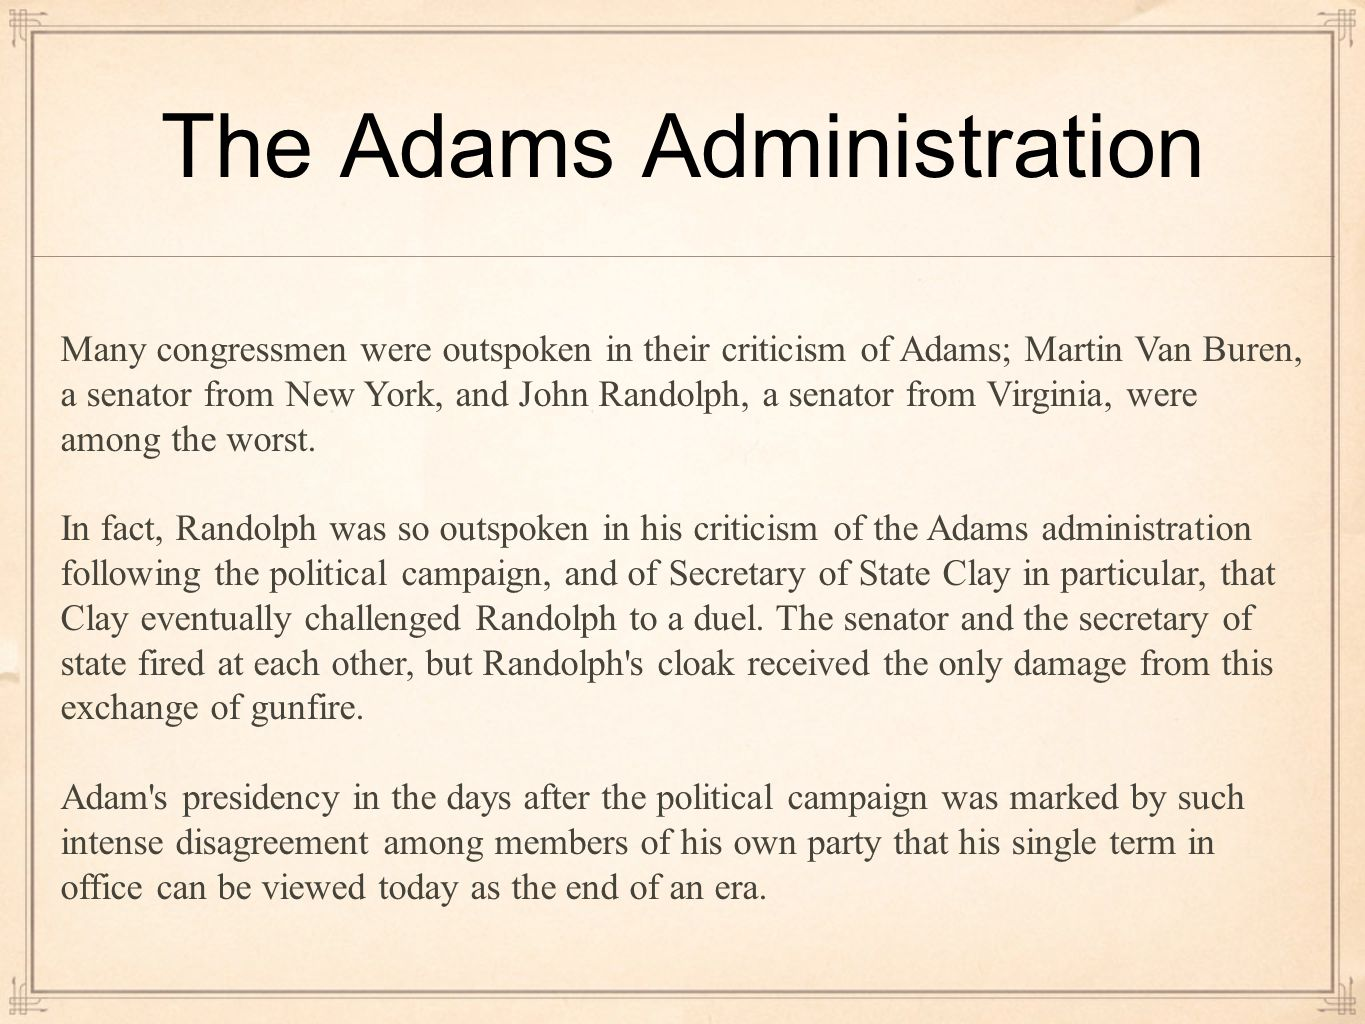 The Adams Administration Many congressmen were outspoken in their criticism of Adams; Martin Van Buren, a senator from New York, and John Randolph, a senator from Virginia, were among the worst.